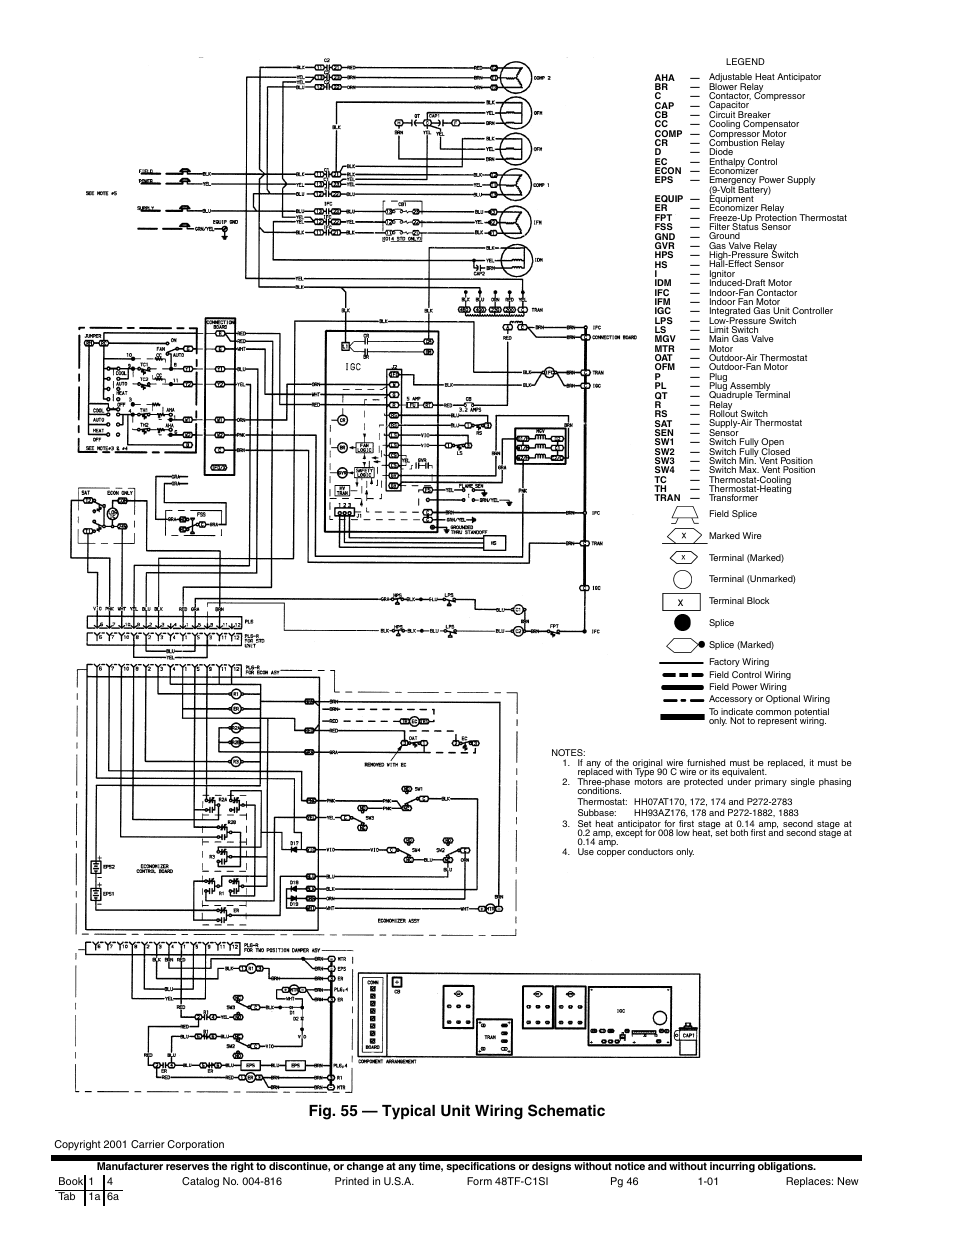 Fig 55 Typical Unit Wiring Schematic